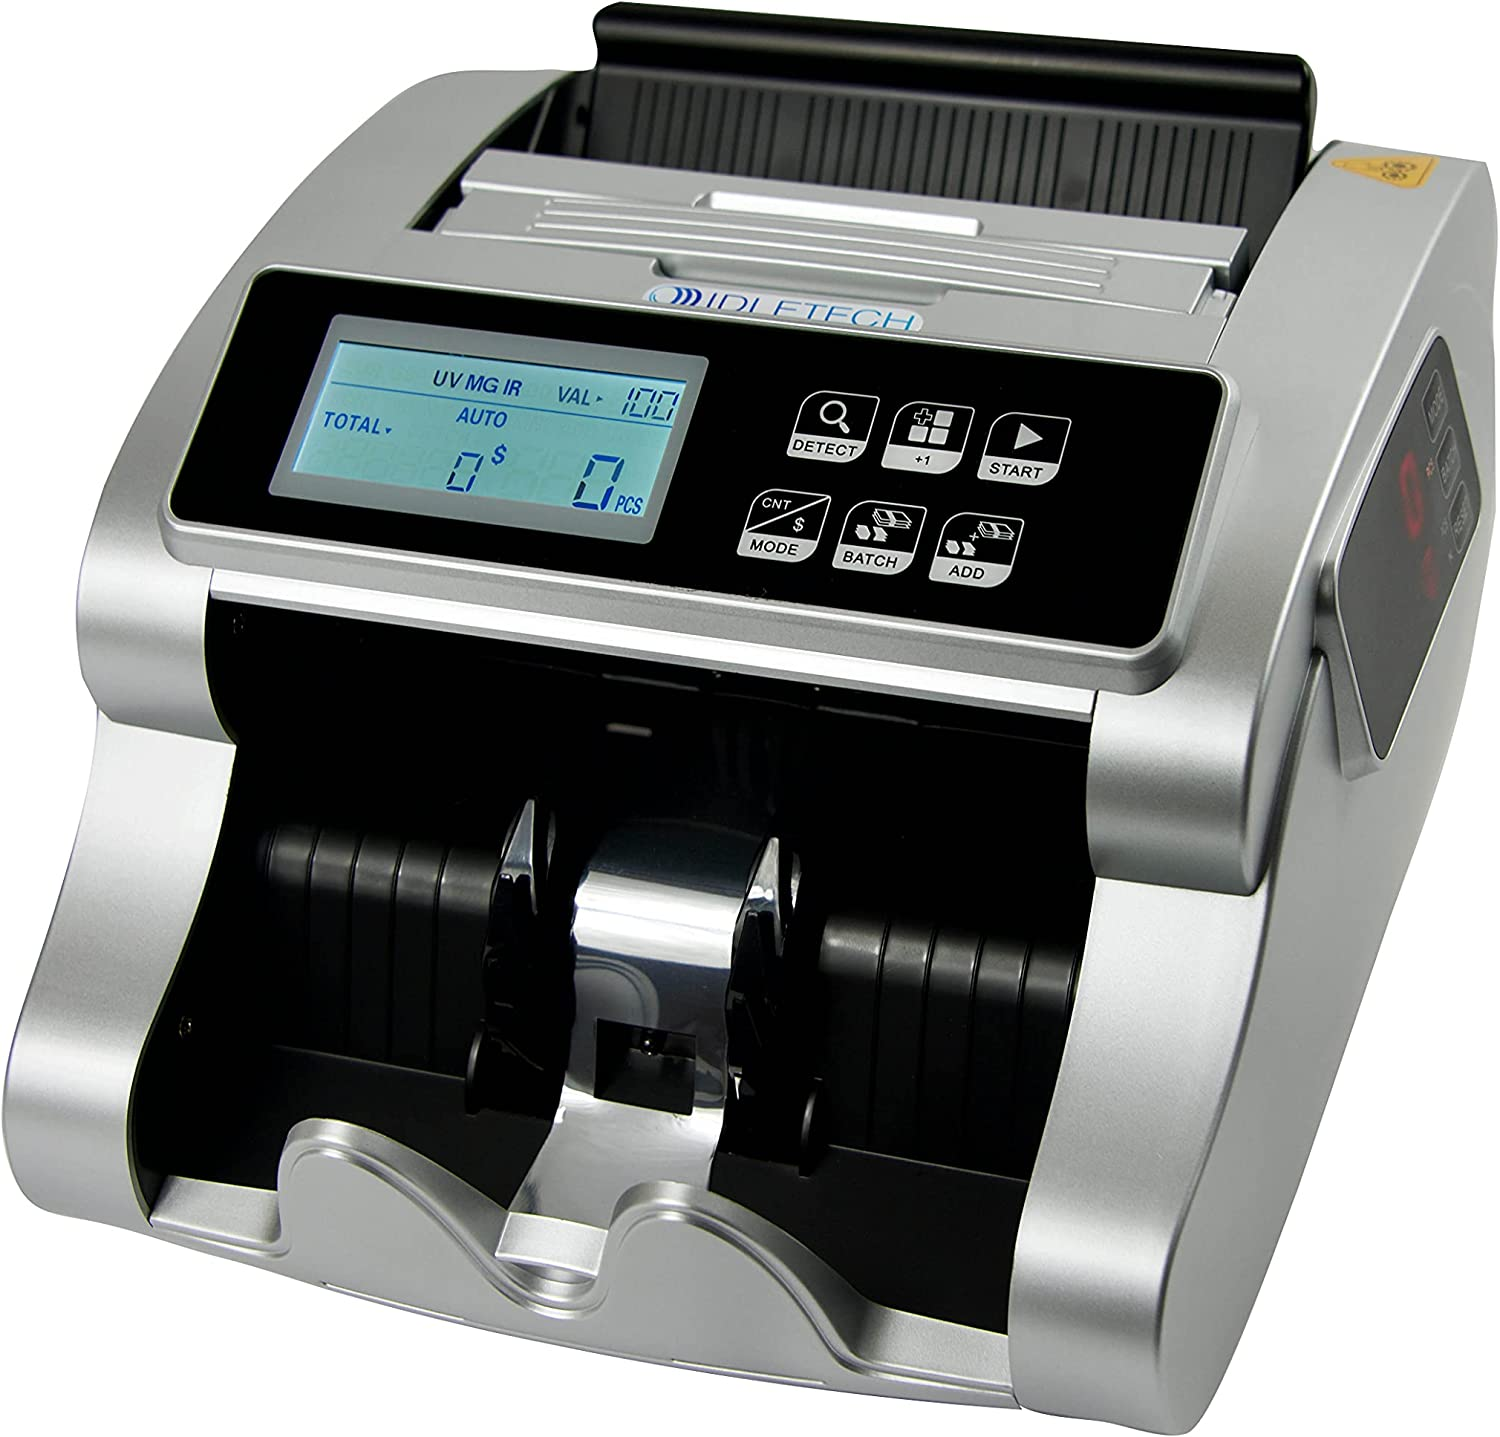 IDLETECH BC-1100 USD Money Max 74% OFF counter dete with New popularity counterfeit machine